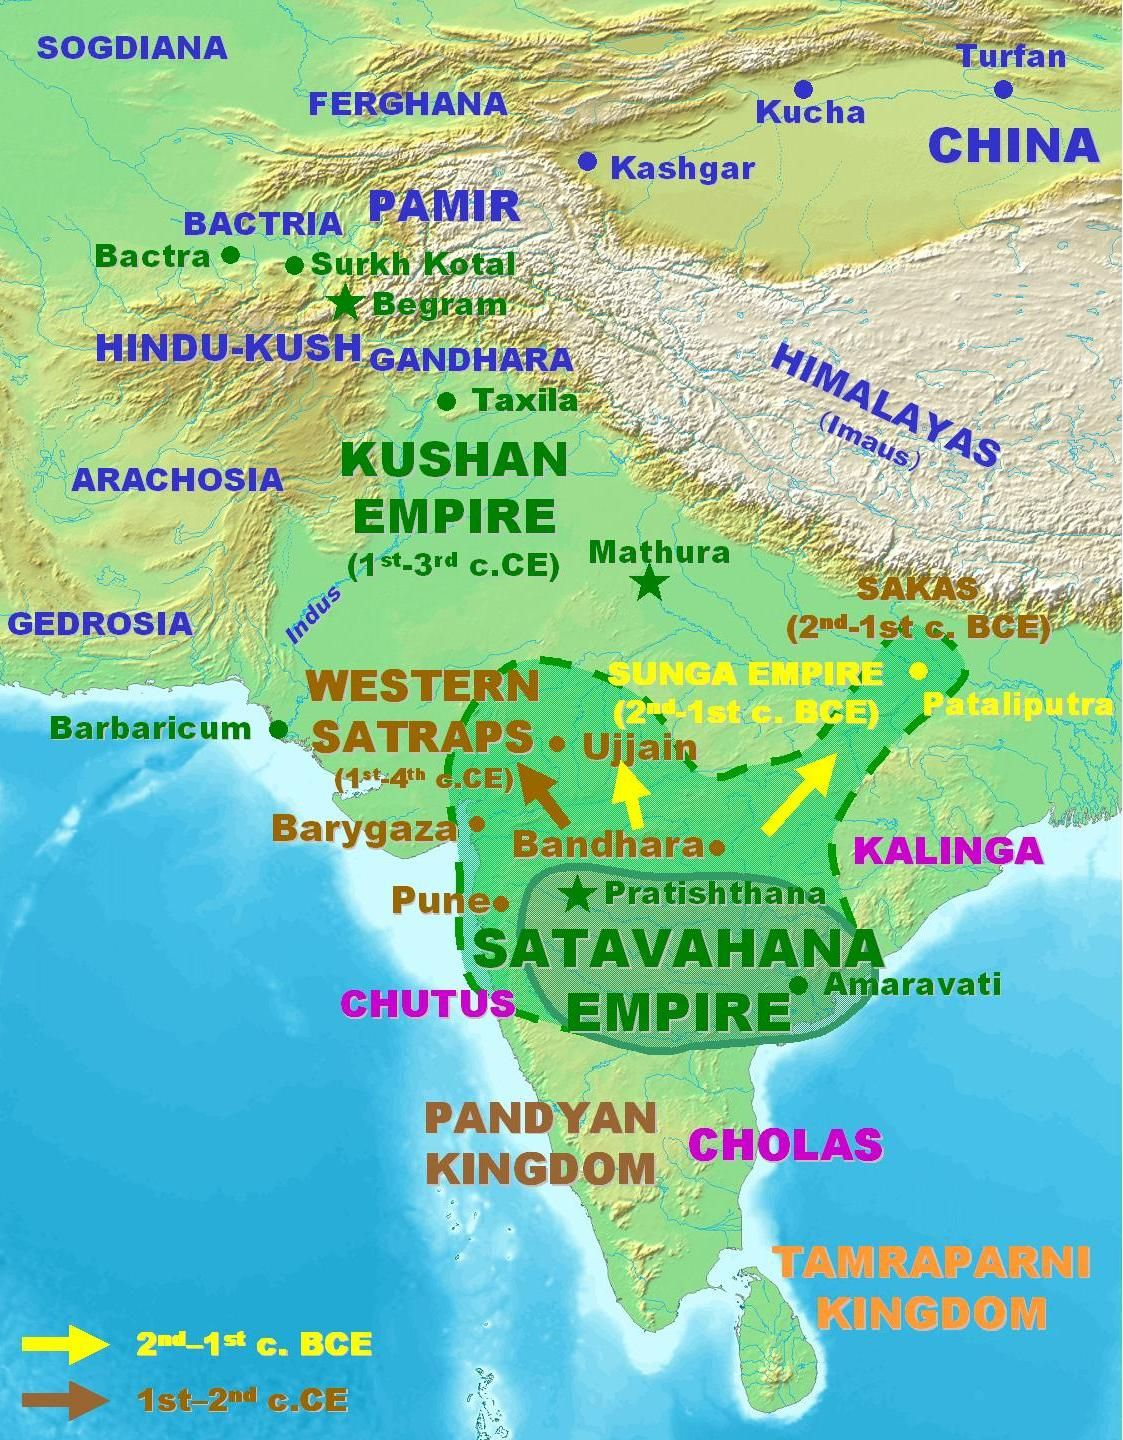 The Satavahana dynasty had its roots in Kotilingala on the